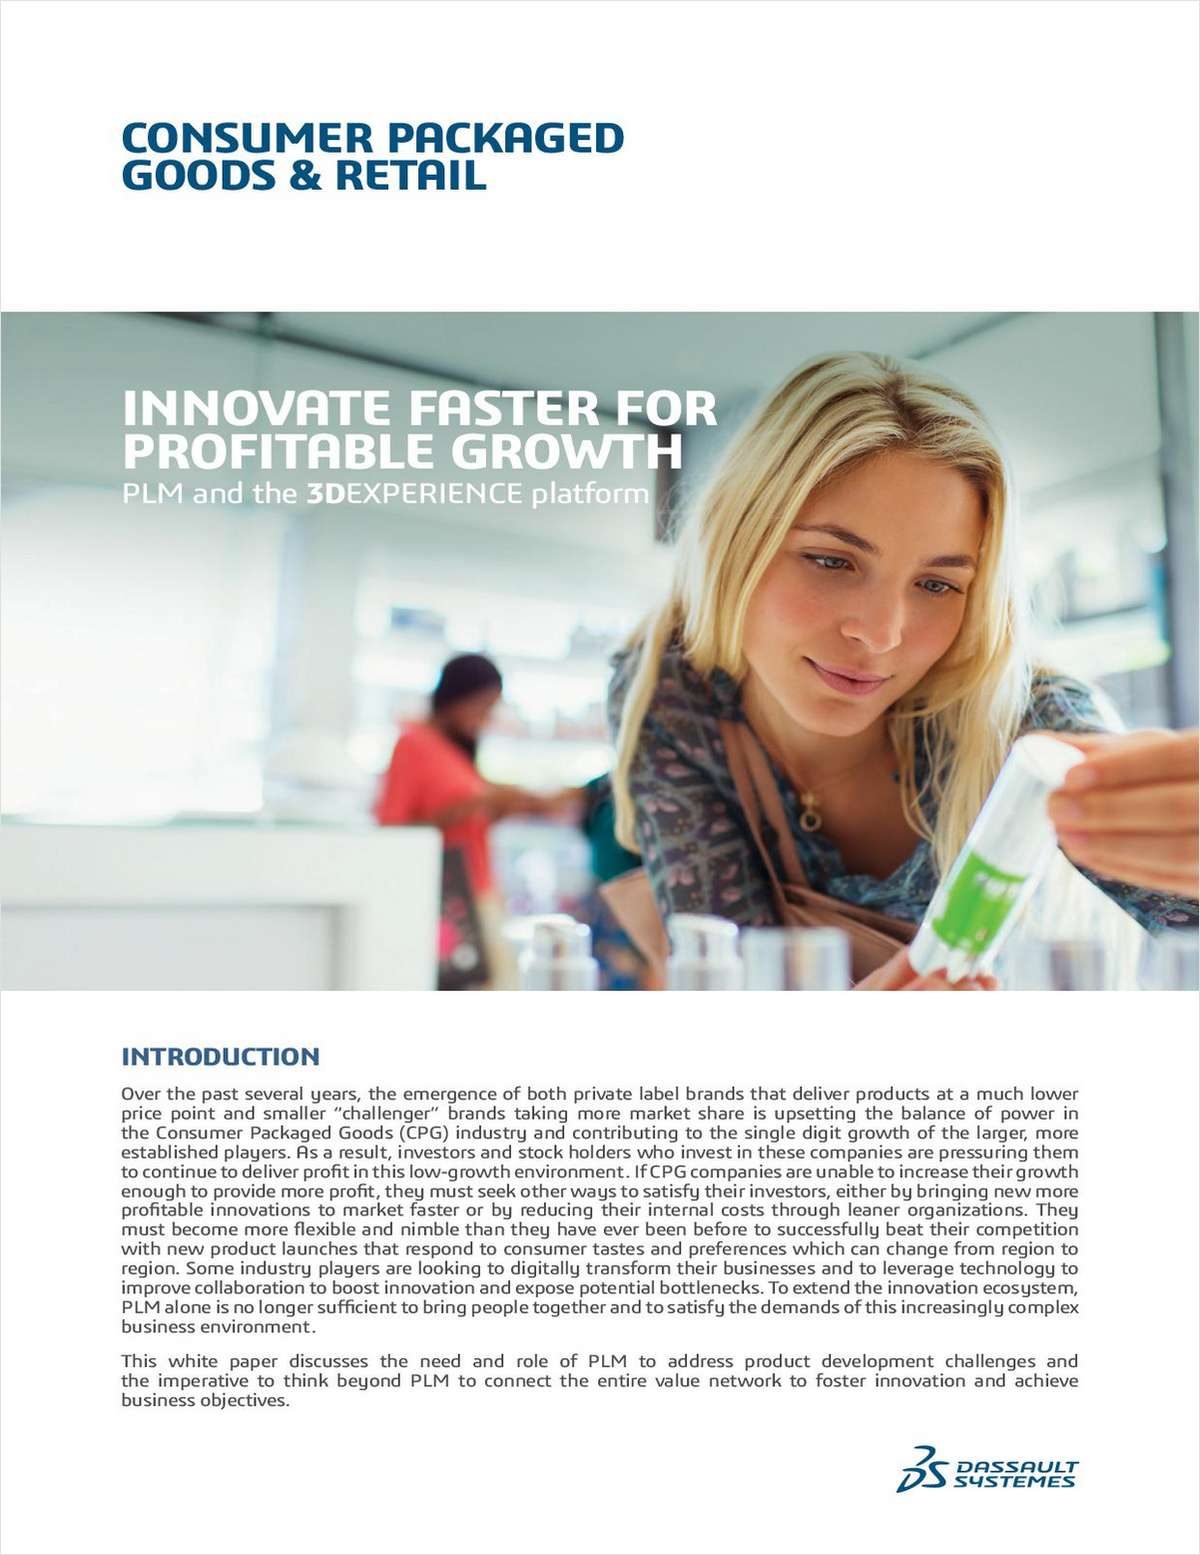 Innovate Faster For Profitable Growth - PLM and the 3DEXPERIENCE Platform